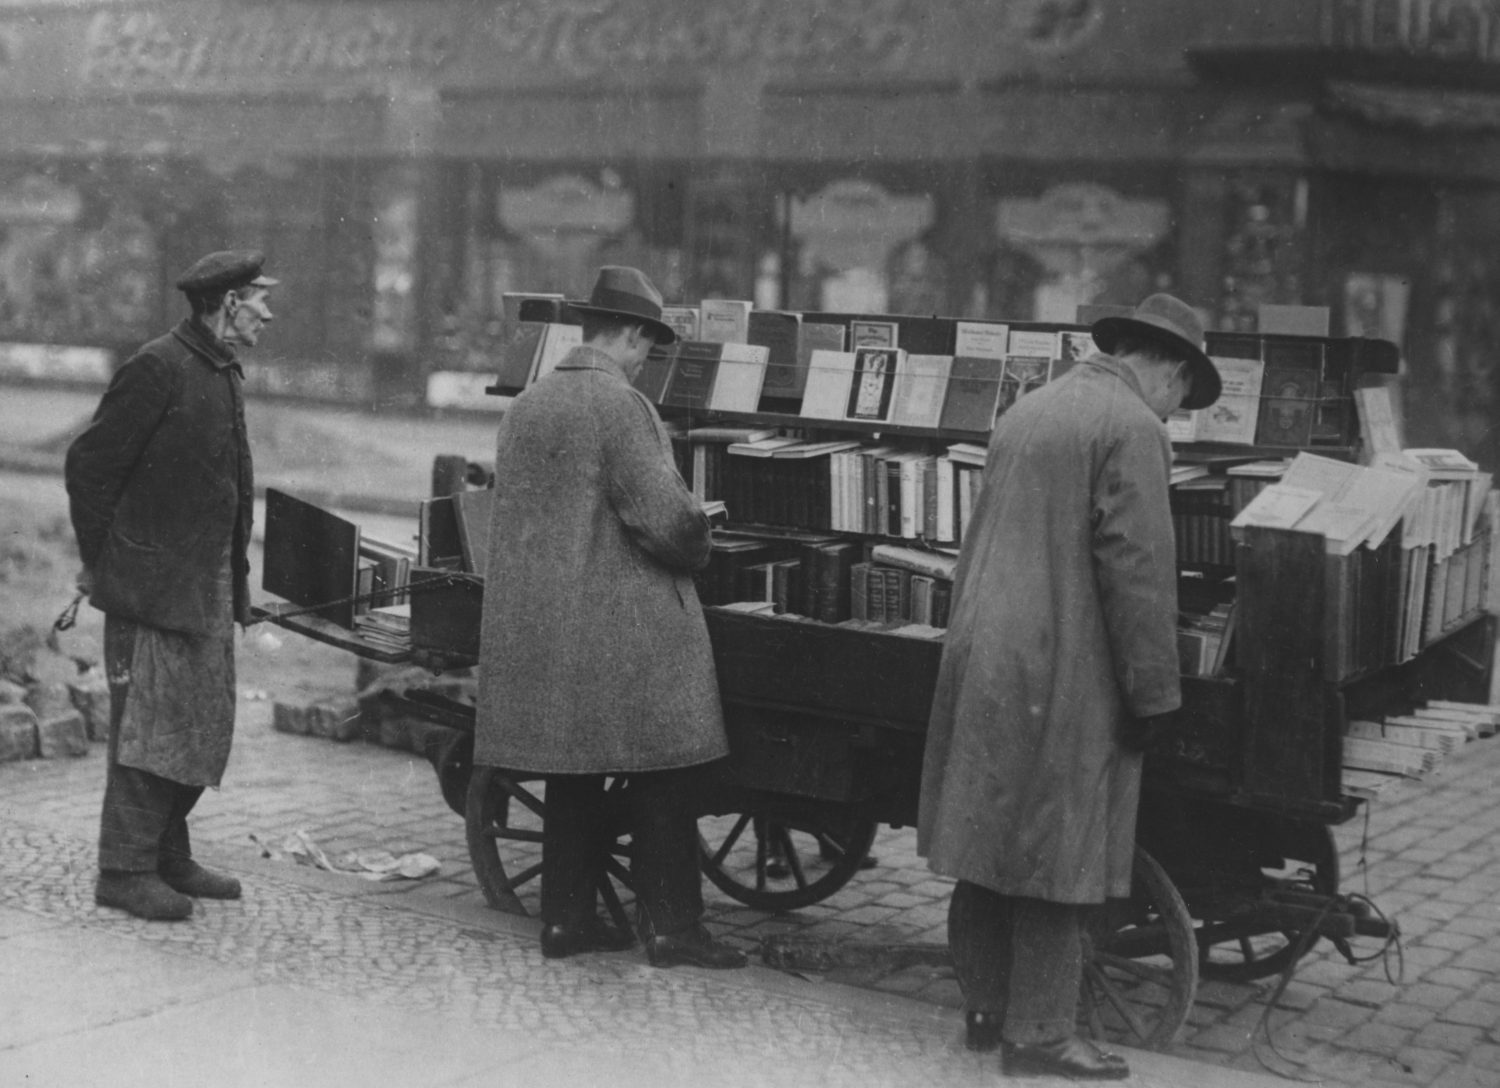 Customers browse at a mobile book stall, Berlin, circa 1925.